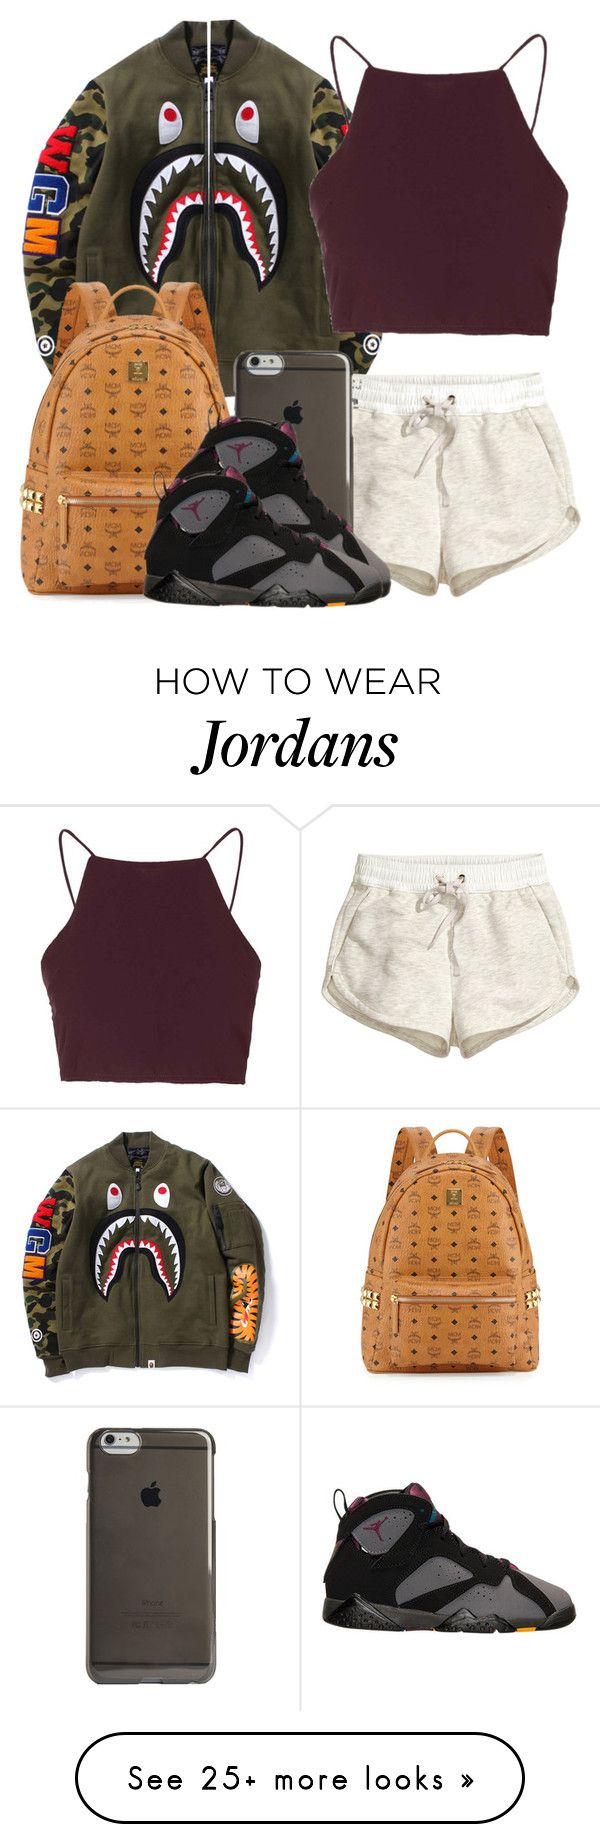 """Purple Reign // Future"" by luhariiee on Polyvore featuring Topshop, H&M, Agent 18, MCM, BP., women's clothing, women, female, woman and misses"